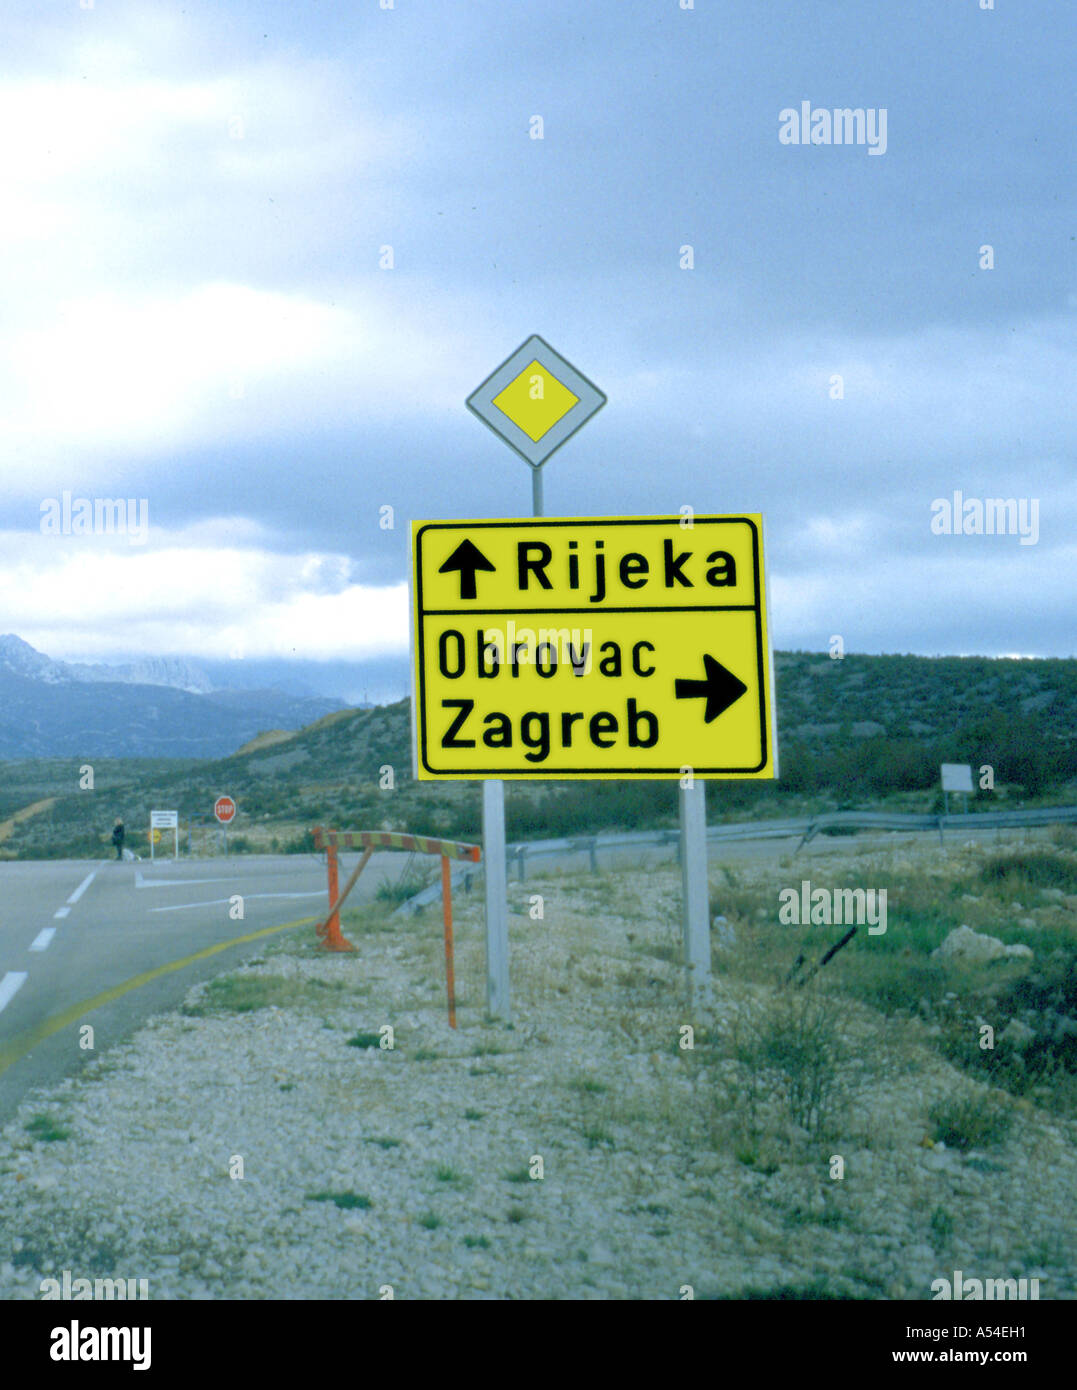 traffic sign with directions - Stock Image